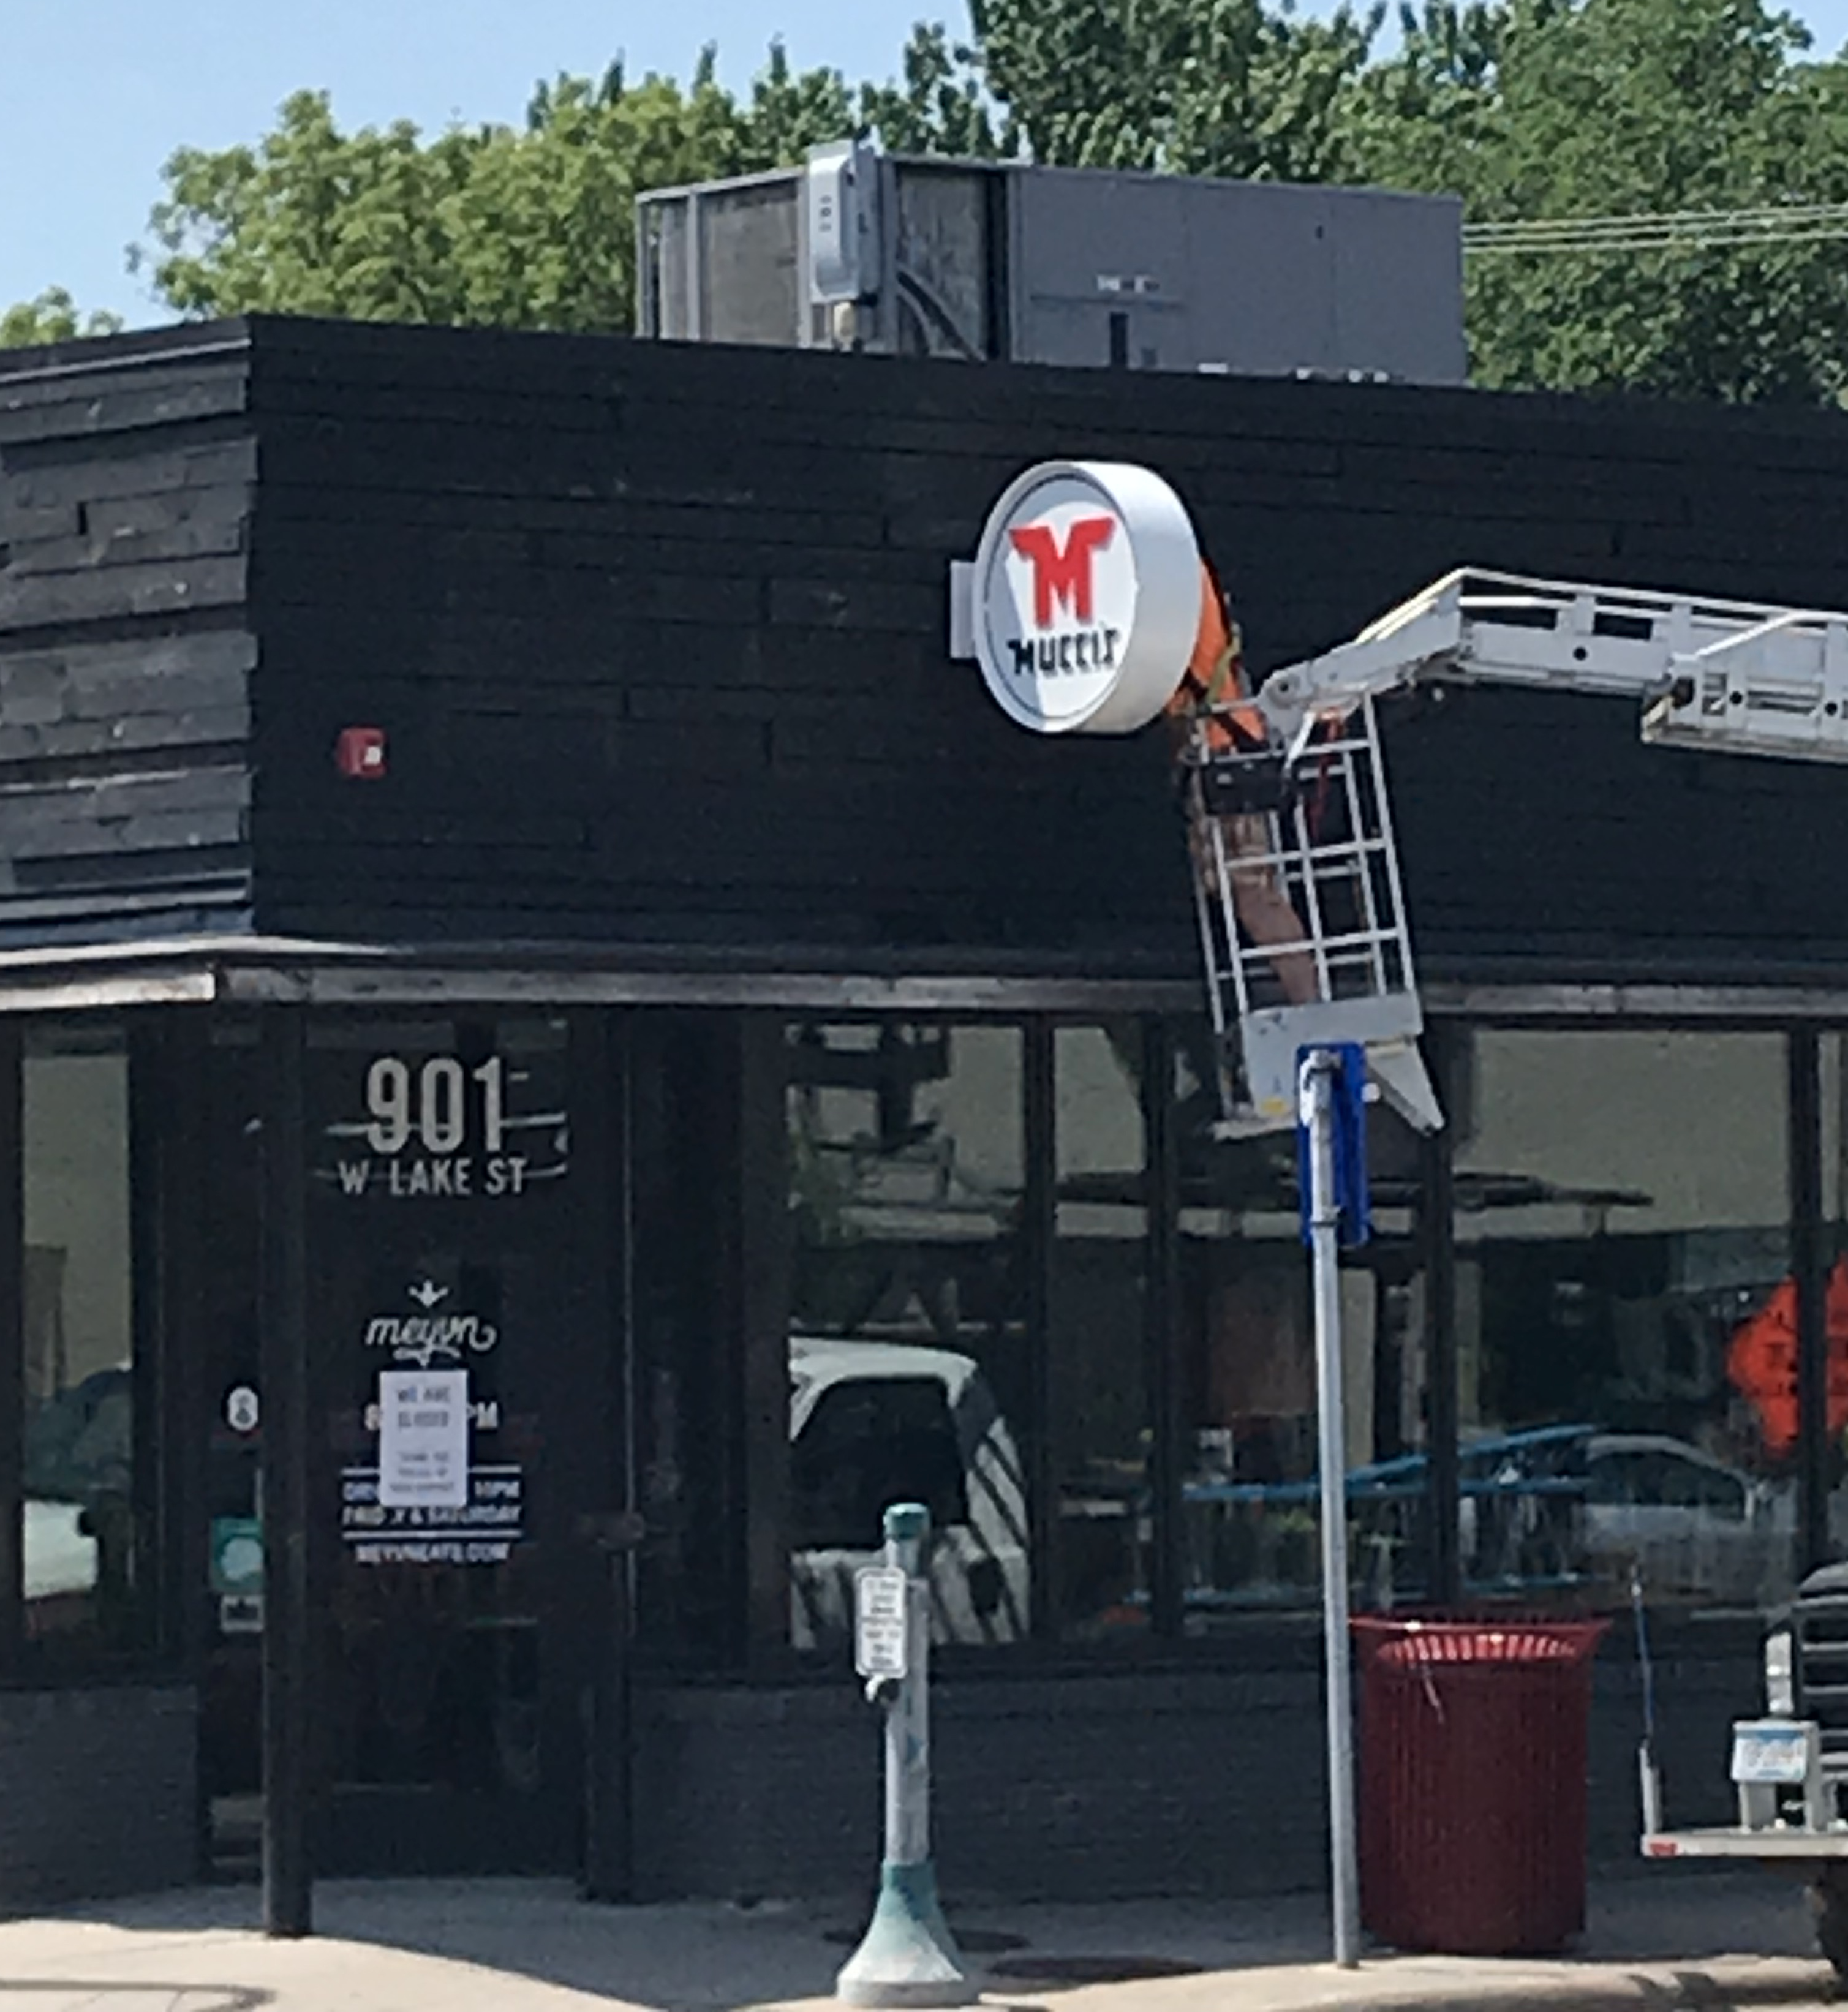 Restaurant's Owner Continues Refusal to Confirm the Mounting Obviousness of Its Existence